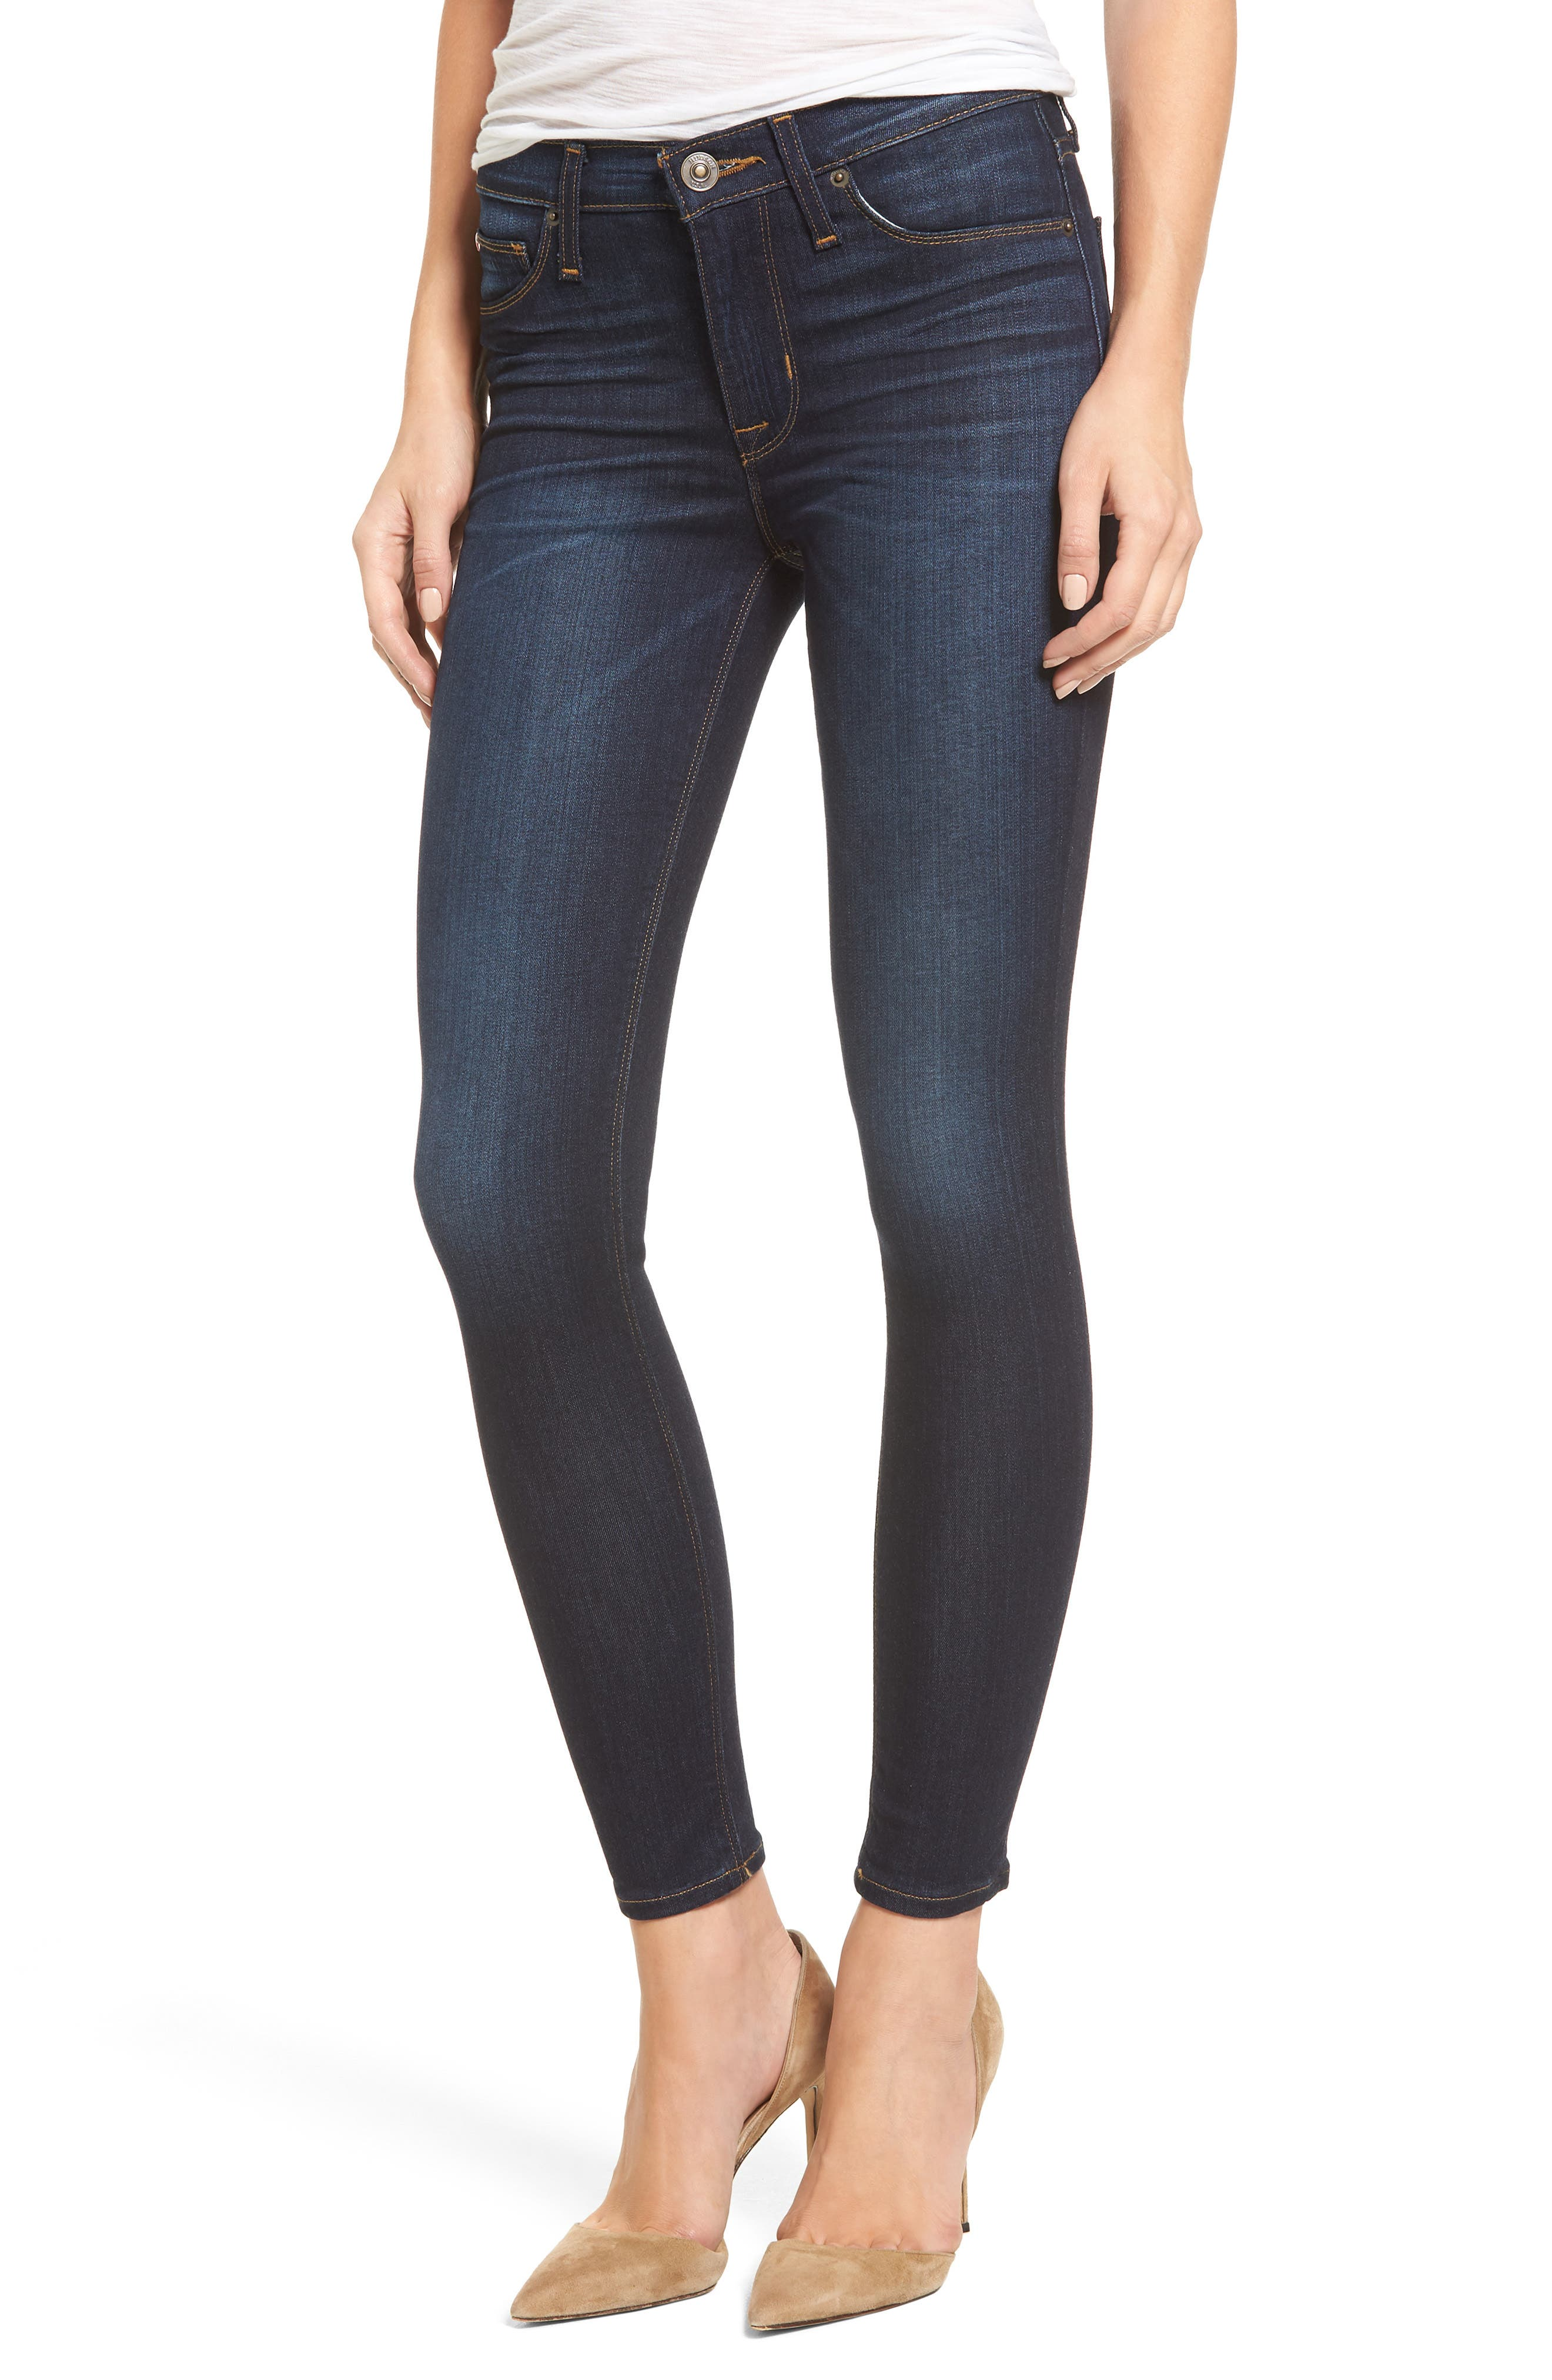 'Nico' Ankle Super Skinny Jeans,                             Main thumbnail 1, color,                             402